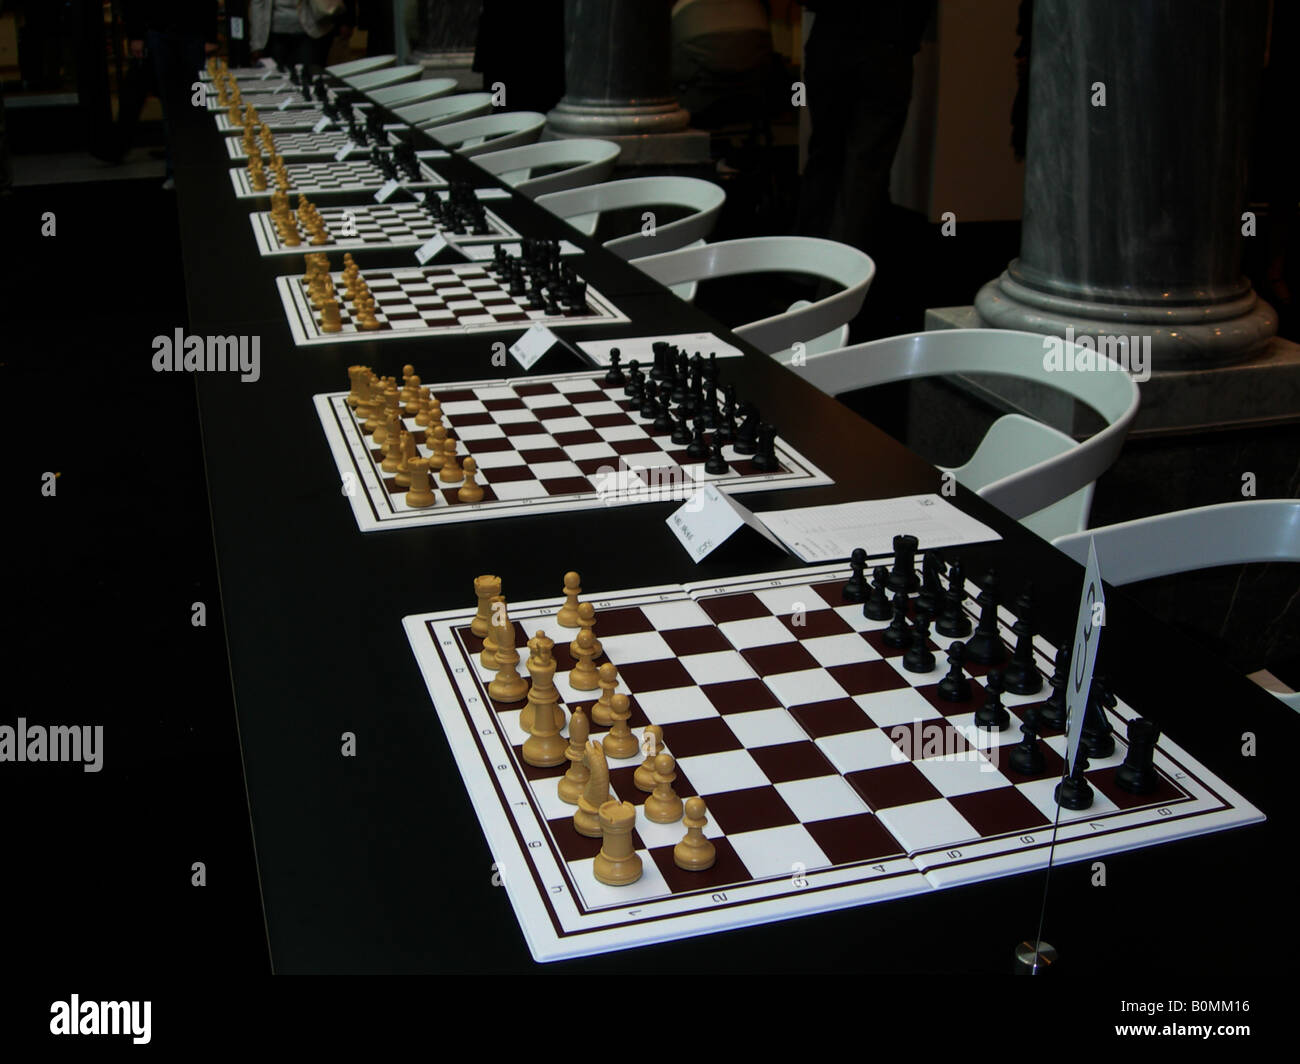 readiness ready chess game many 'chessboards' - Stock Image